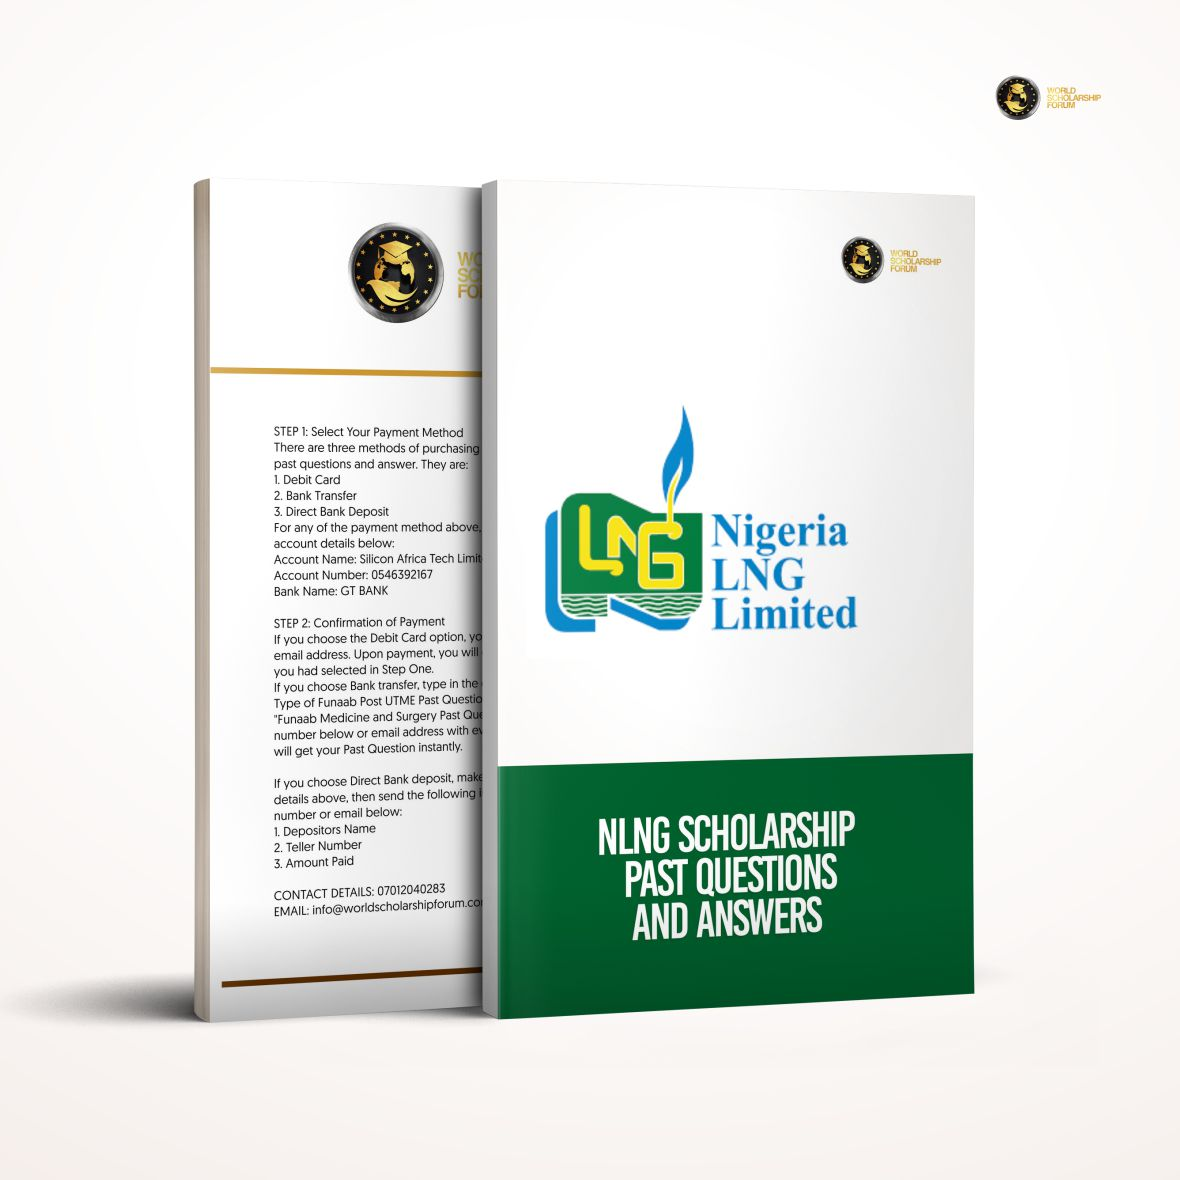 NLNG Undergraduate Scholarship Past Questions and Answers